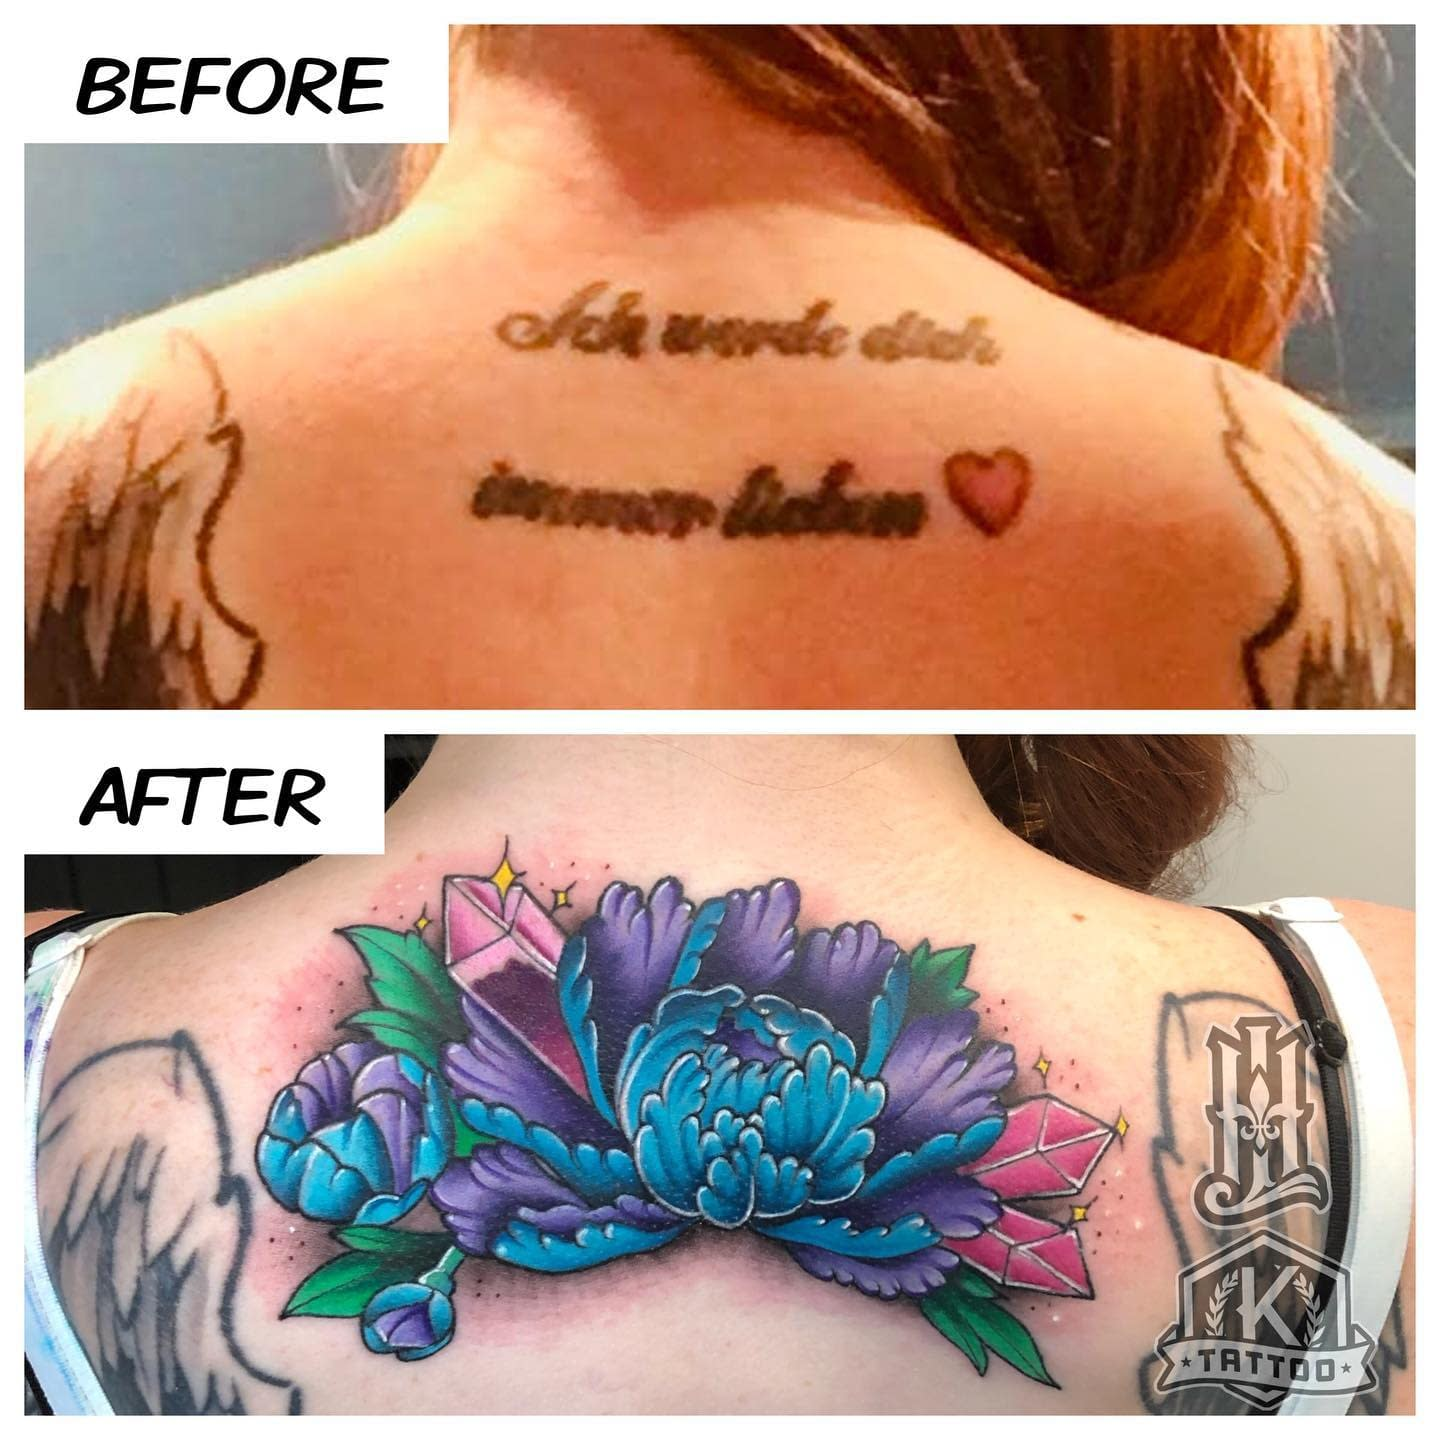 coverup_flowers_crystals_over_text